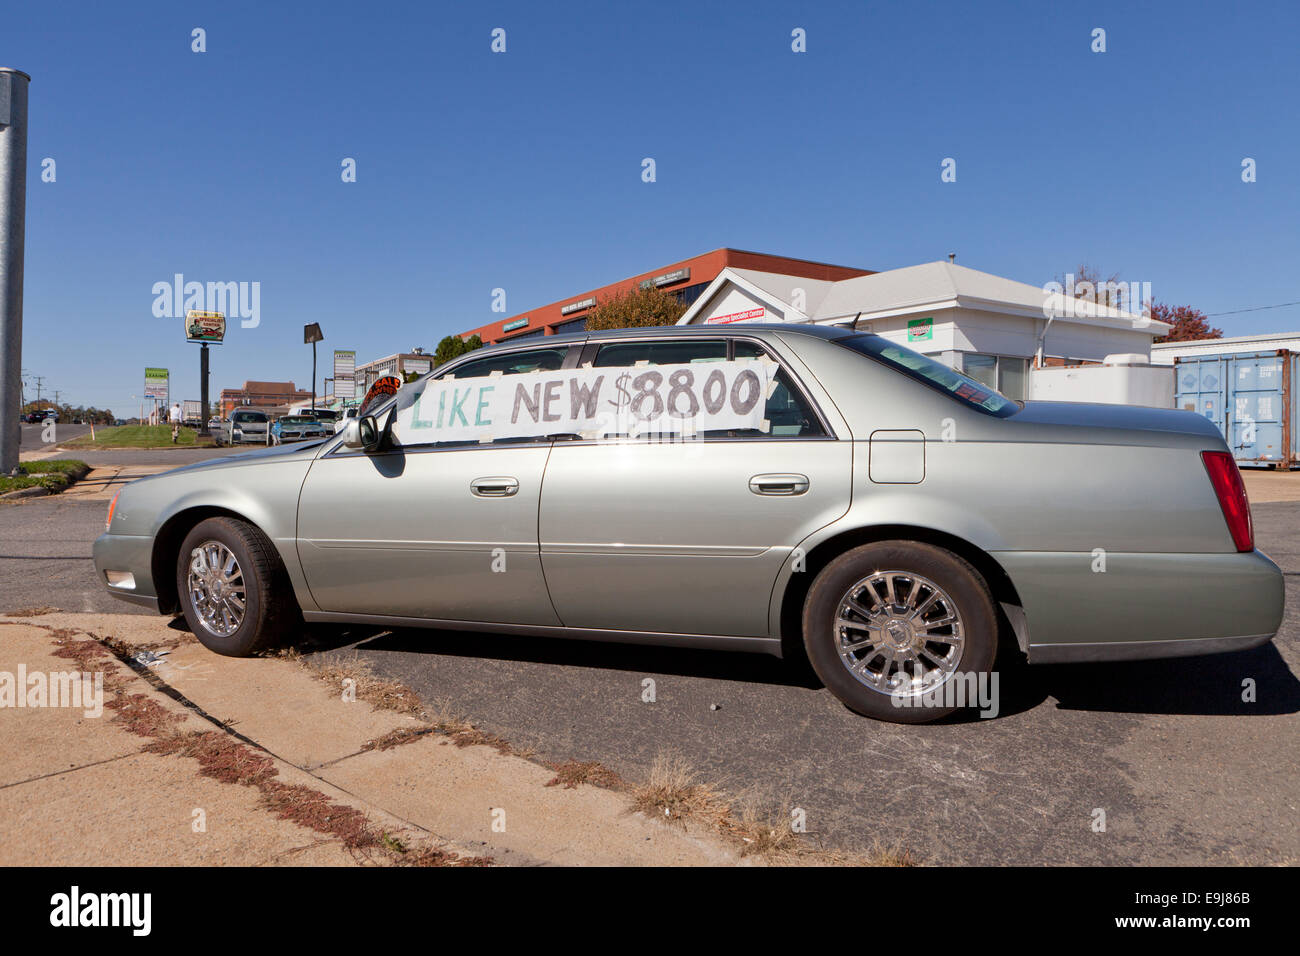 Used Car Sale Owner Usa Stock Photos Used Car Sale Owner Usa Stock